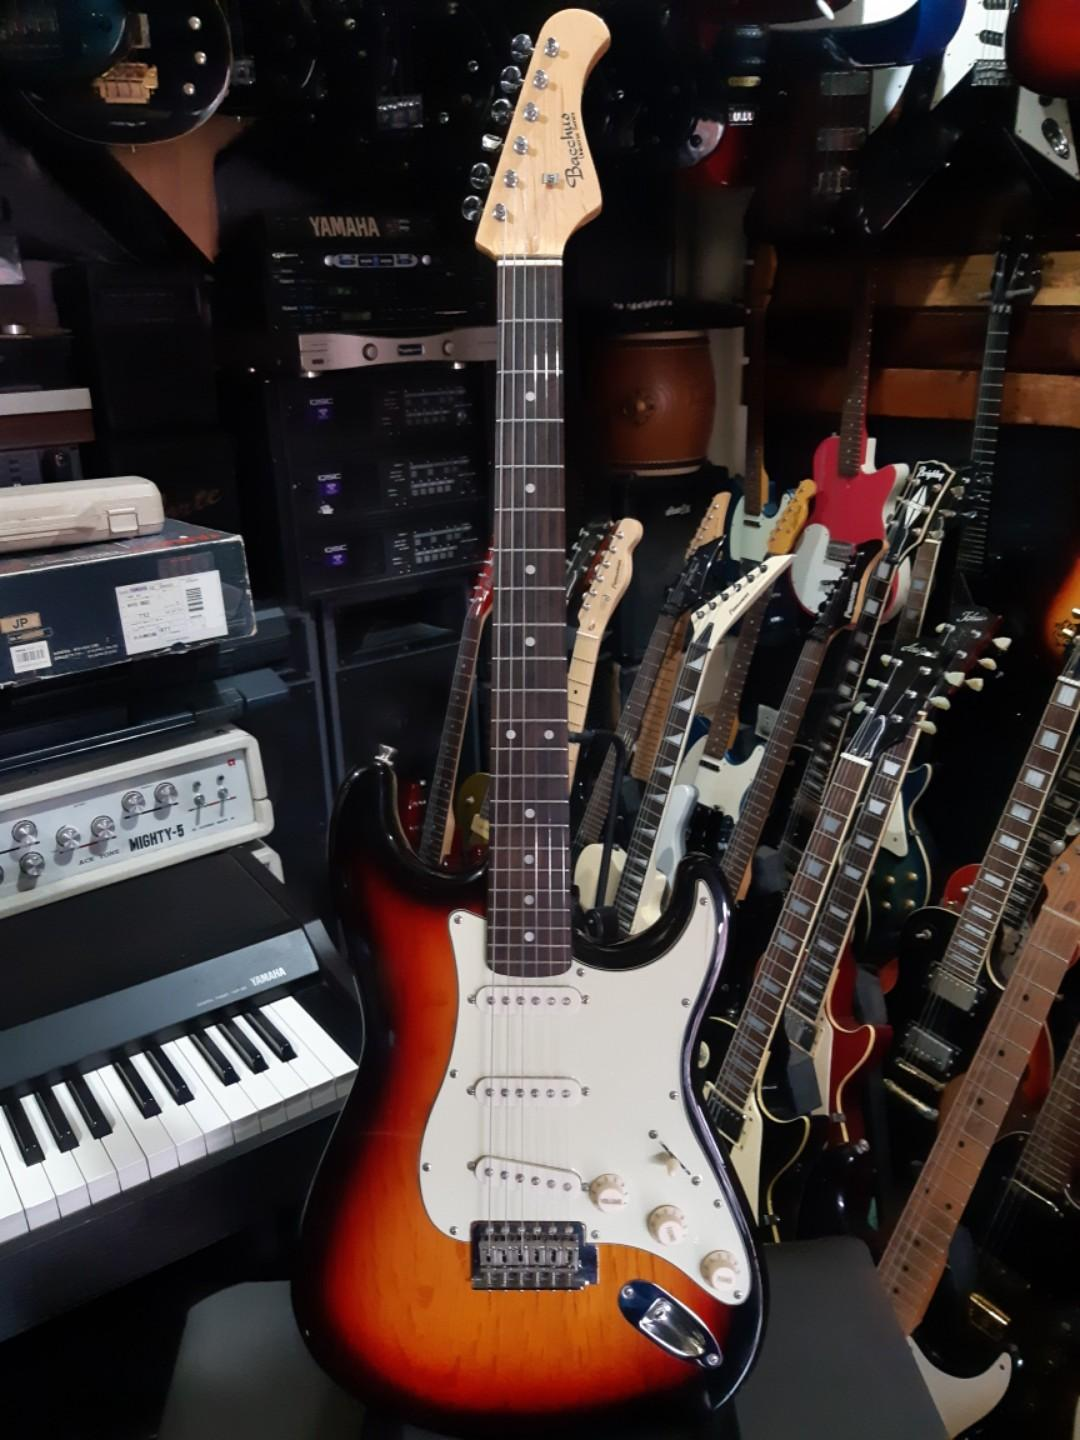 Bacchus stratocaster guitar photo